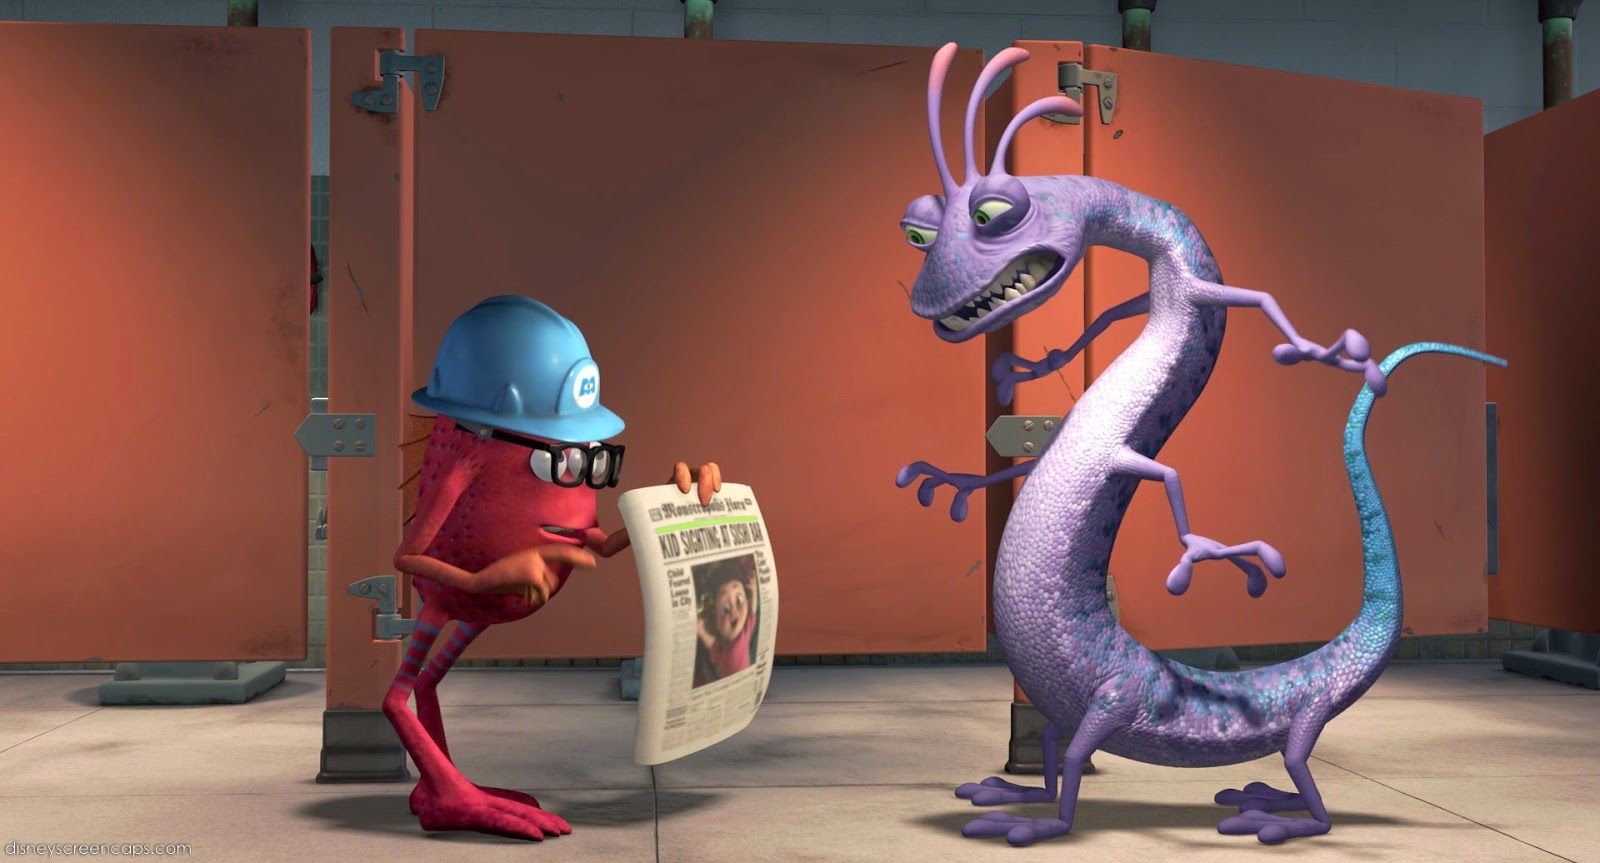 Whatsoever Critic Monsters Inc Movie Review